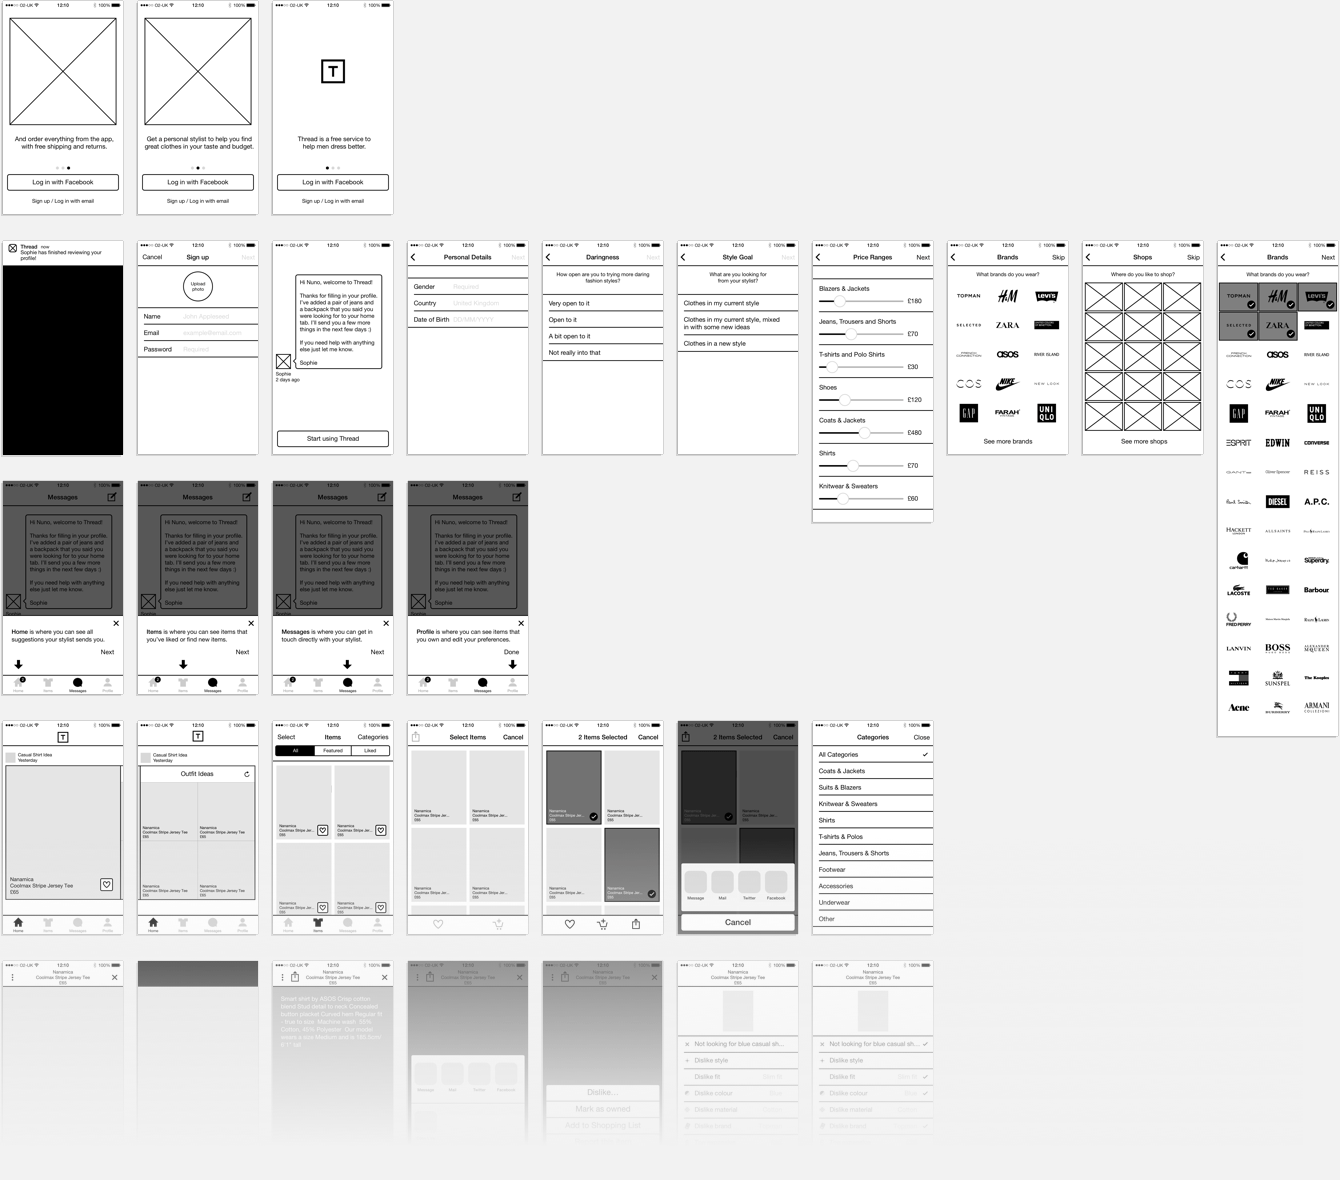 Thread V2 iOS wireframes, work by Nuno Coelho Santos